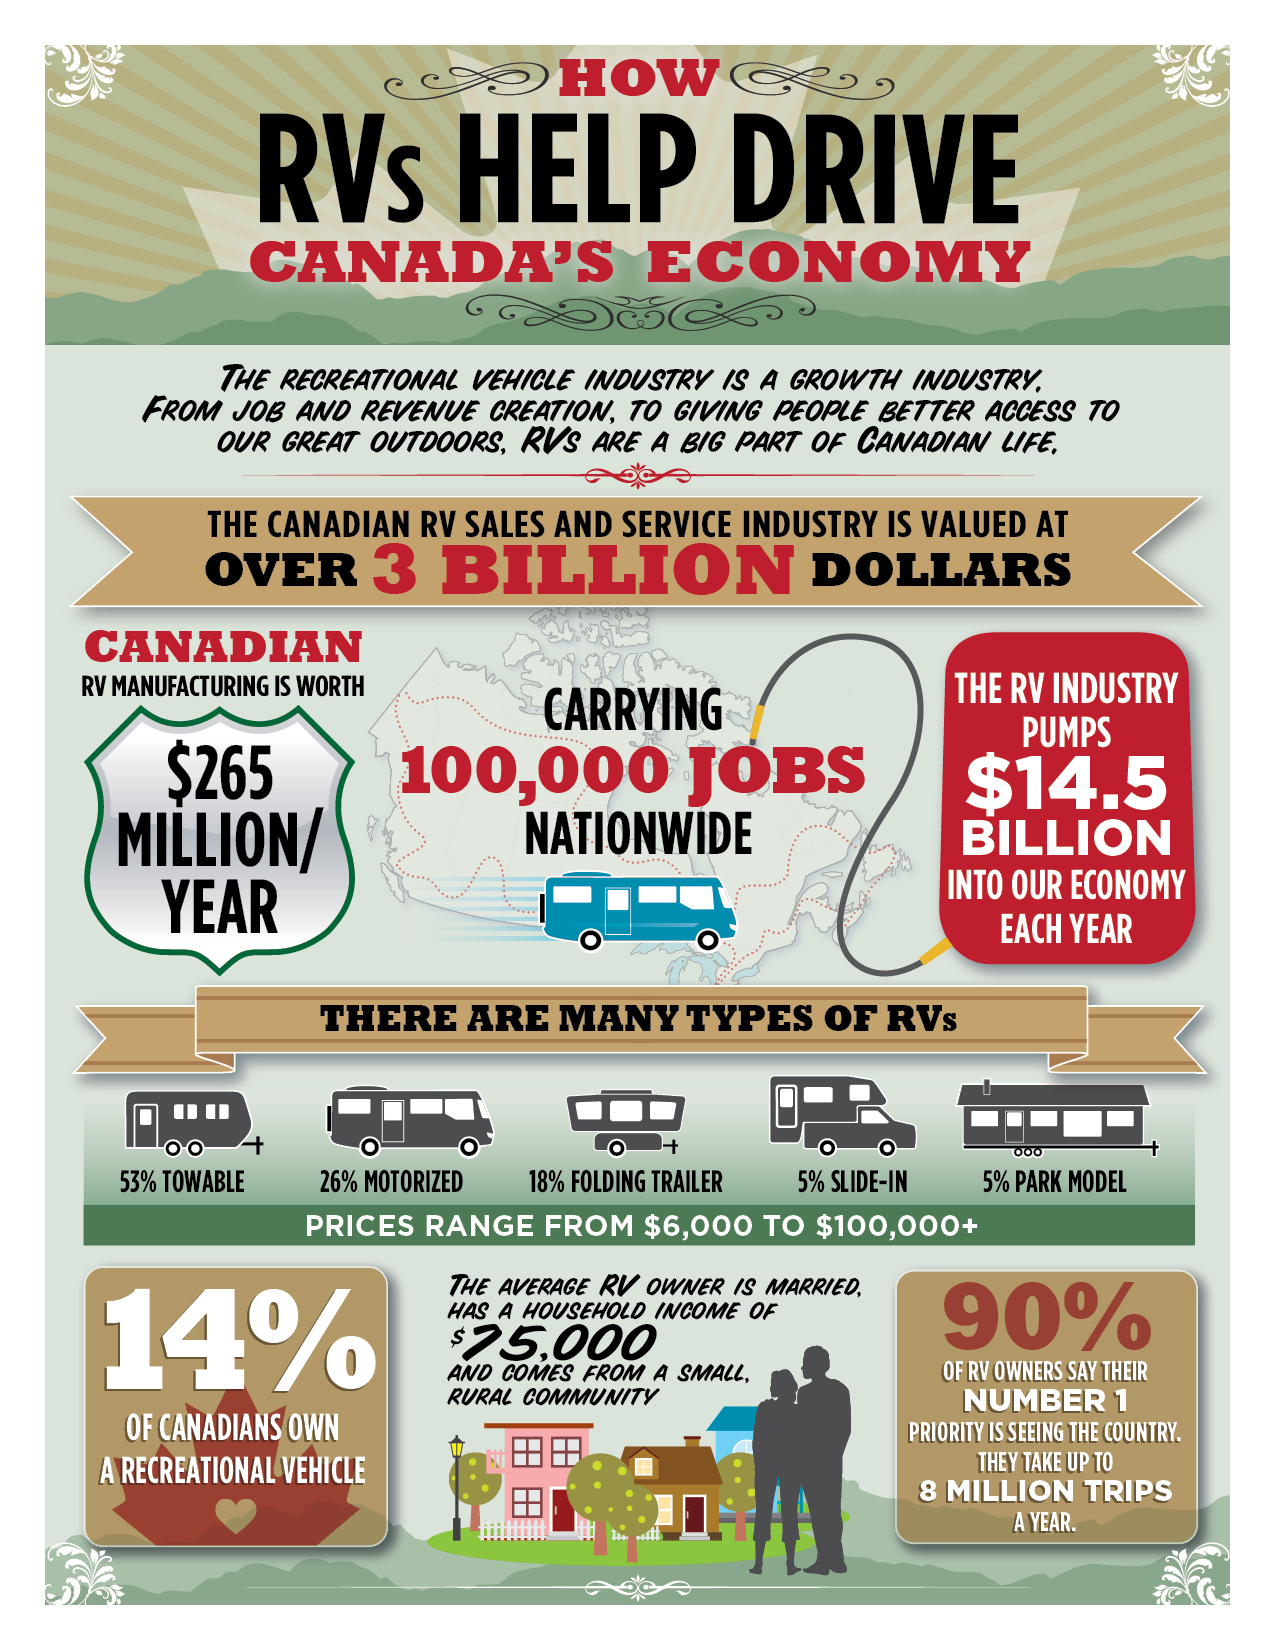 Our latest infographic: How RVs help drive Canada's economy | Acart